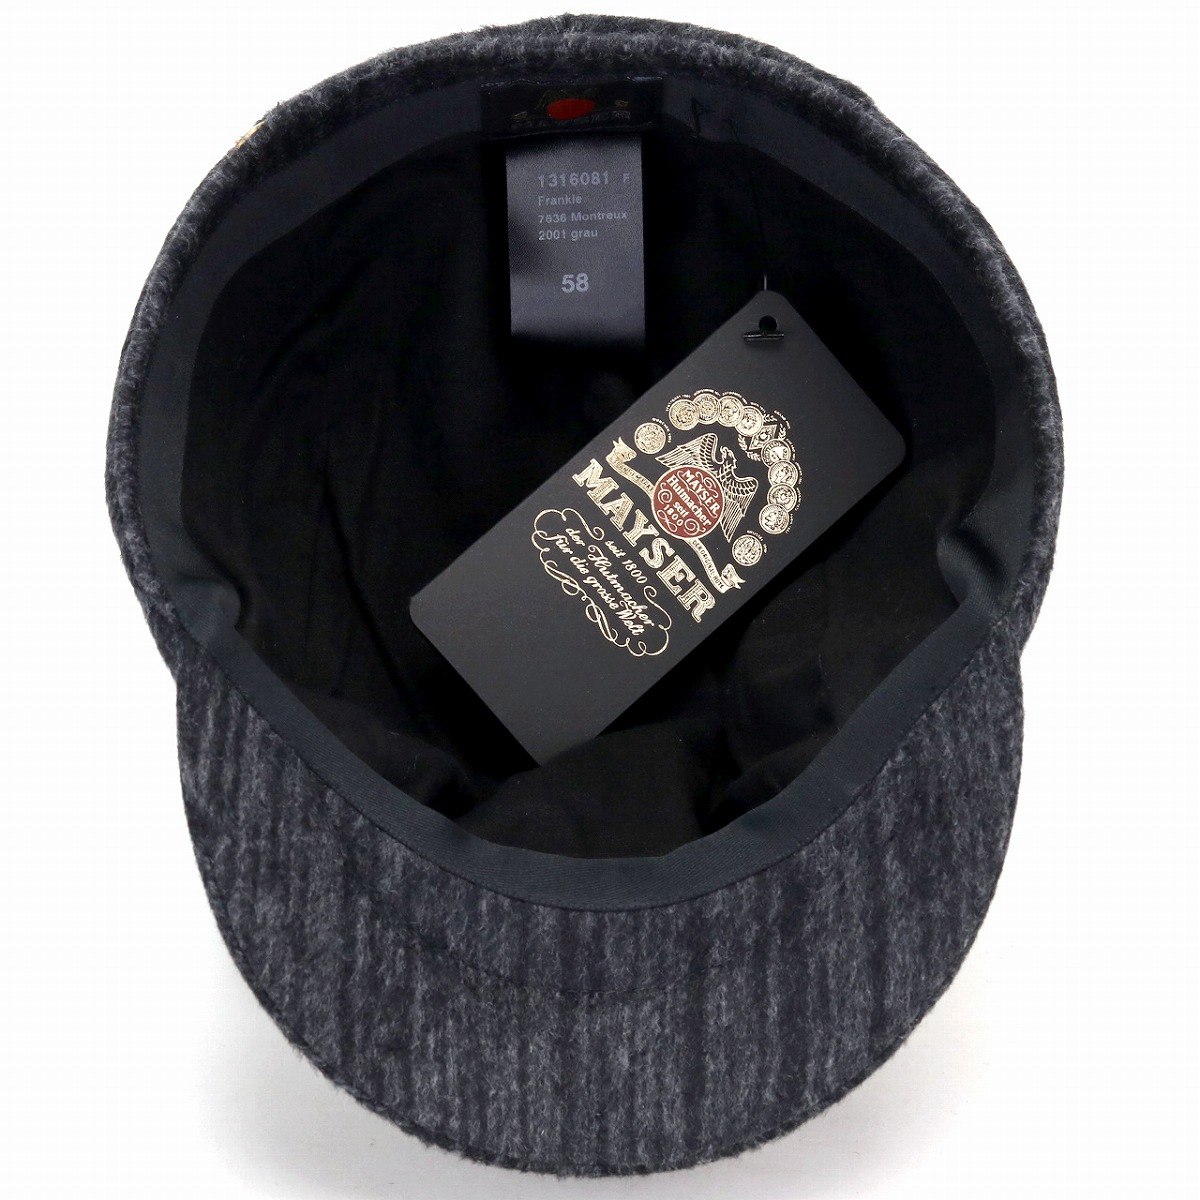 b6a2c2d5576 MAYSER hunting cap men cashmere blend wool Frankie hunting cap hat  ストライプマイザーハンチング hat gentleman warm cold protection ivy cap Lady s ...